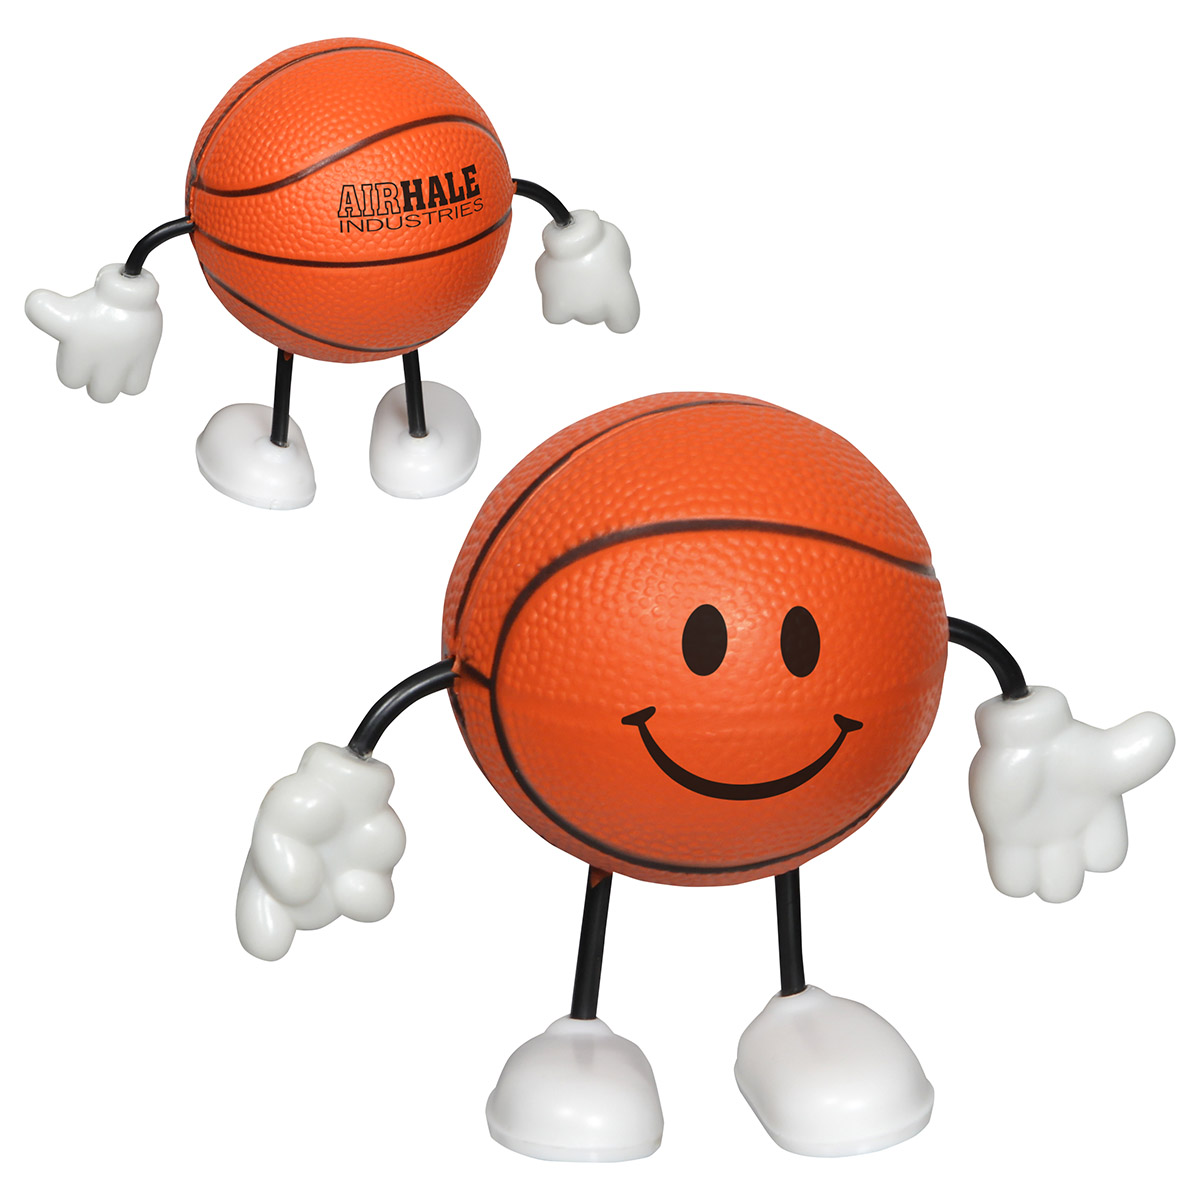 Basketball Figure Stress Reliever, LCH-BK02 - 1 Colour Imprint